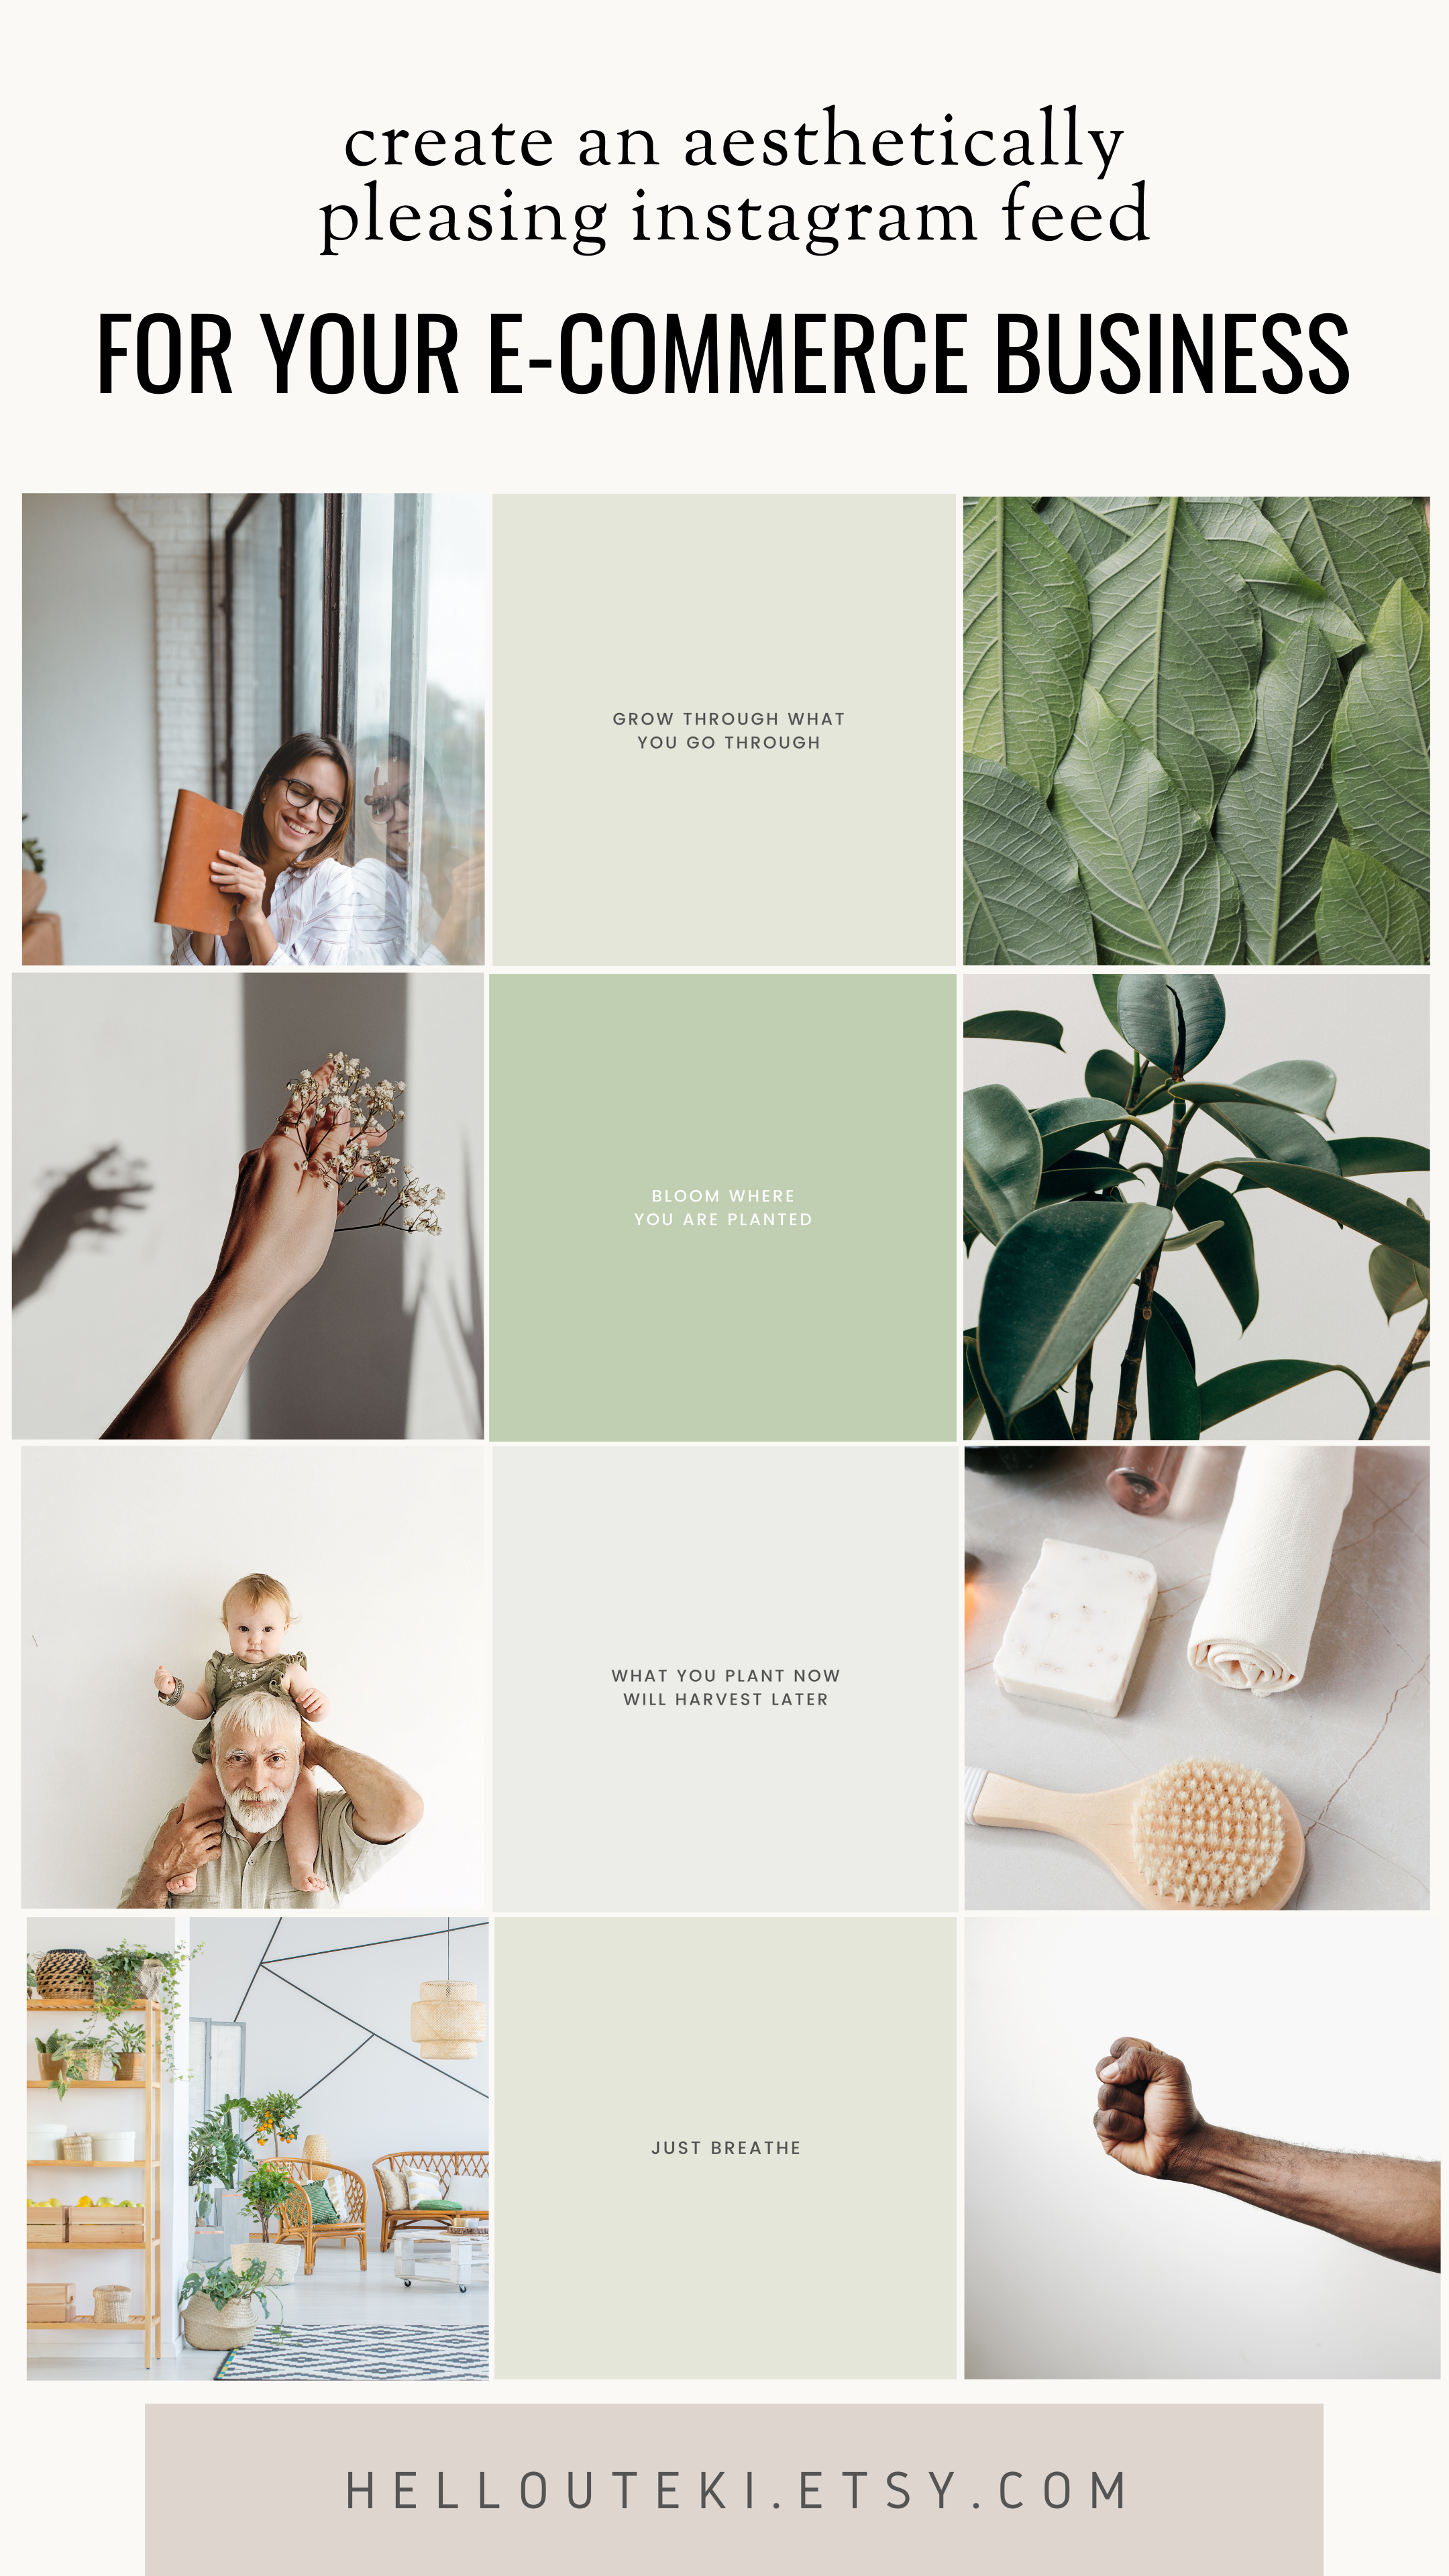 This E-commerce Instagram Kit is perfect if you want to build an aesthetically pleasing Instagram profile. For plant, nature lovers! A captivating instagram profile is one of the most important thing to build your community. We are here to help you get started! #instagramfeed #instagramkit #instagramfeedideas #instagramtemplates #minimalistfeed #plants #plantlover #plantmama #naturelover #gaialover